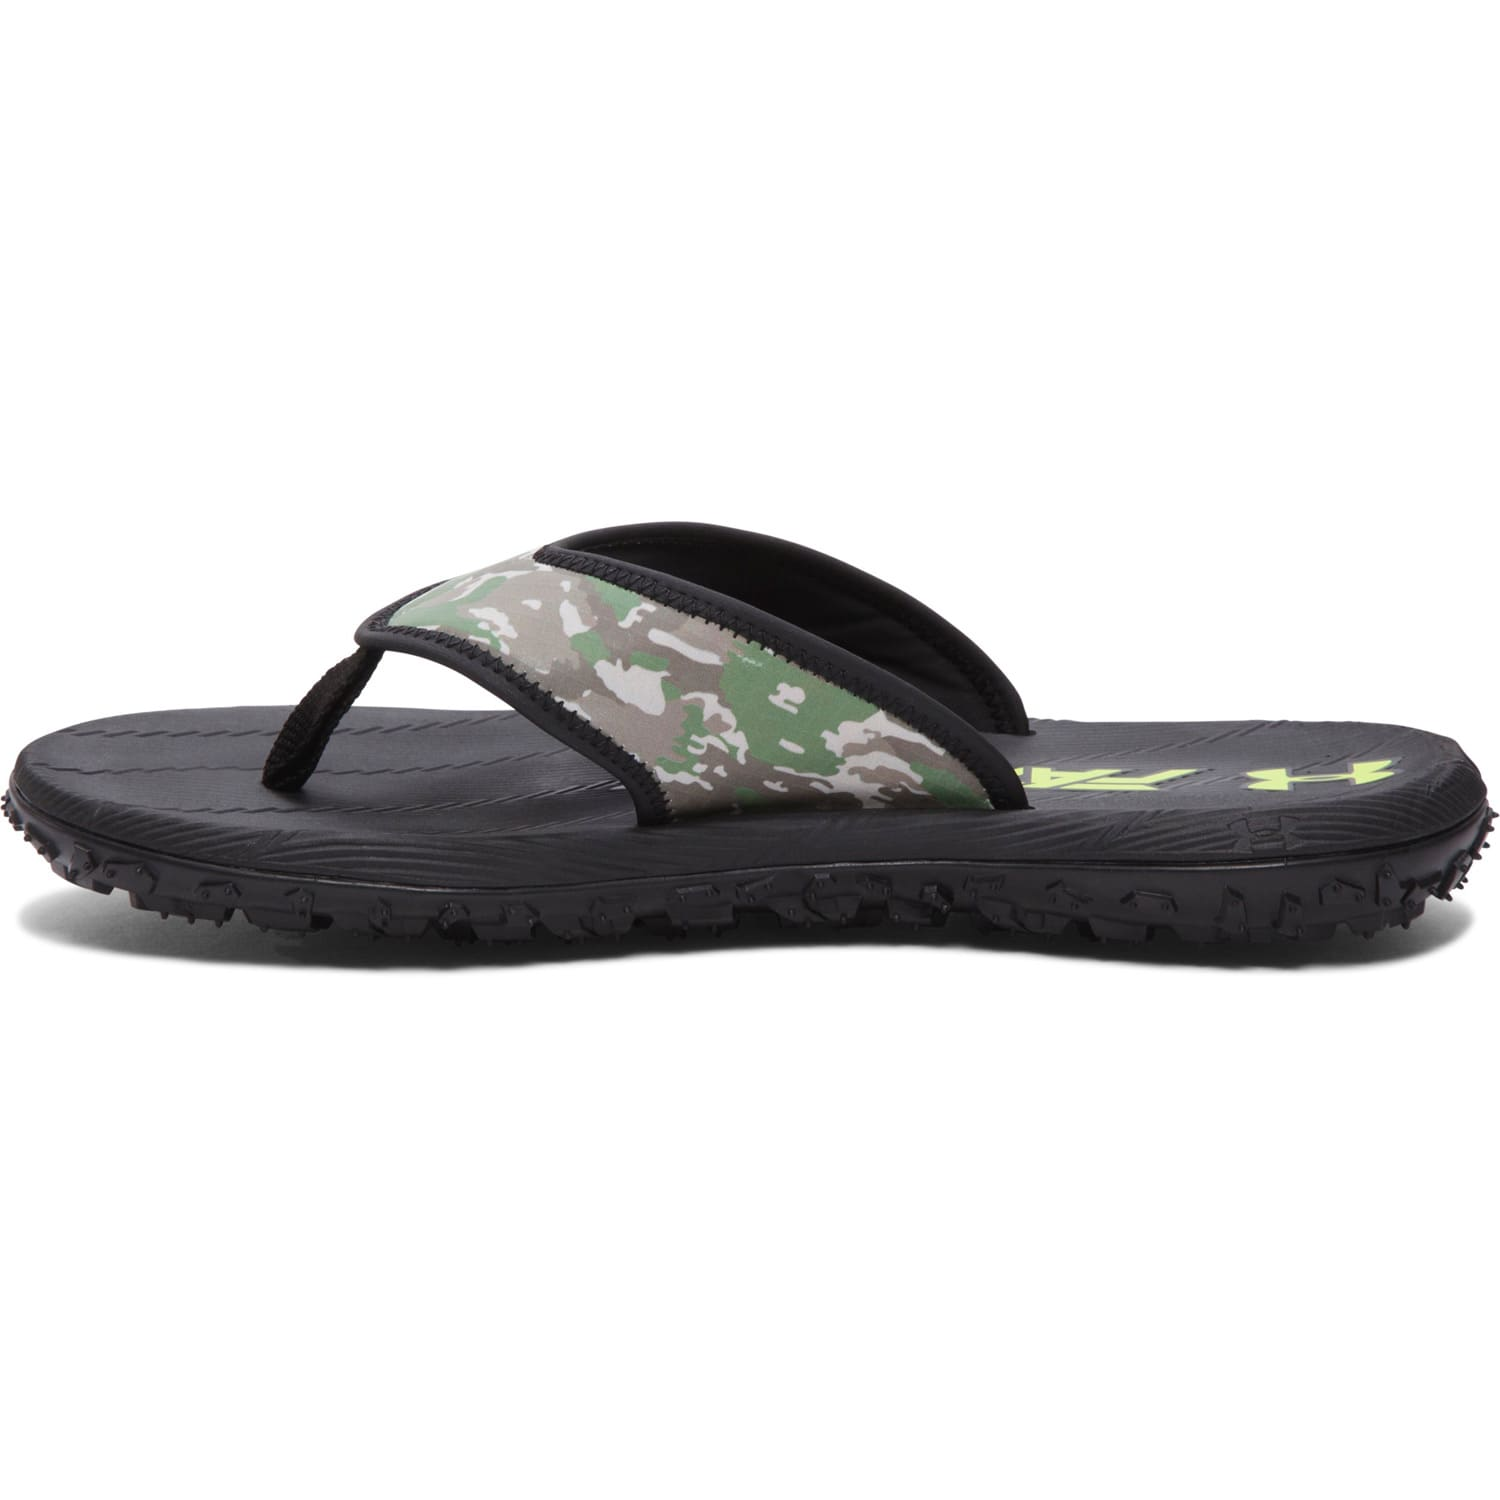 check out aa0e6 8b474 Under Armour Fat Tire T Sandals